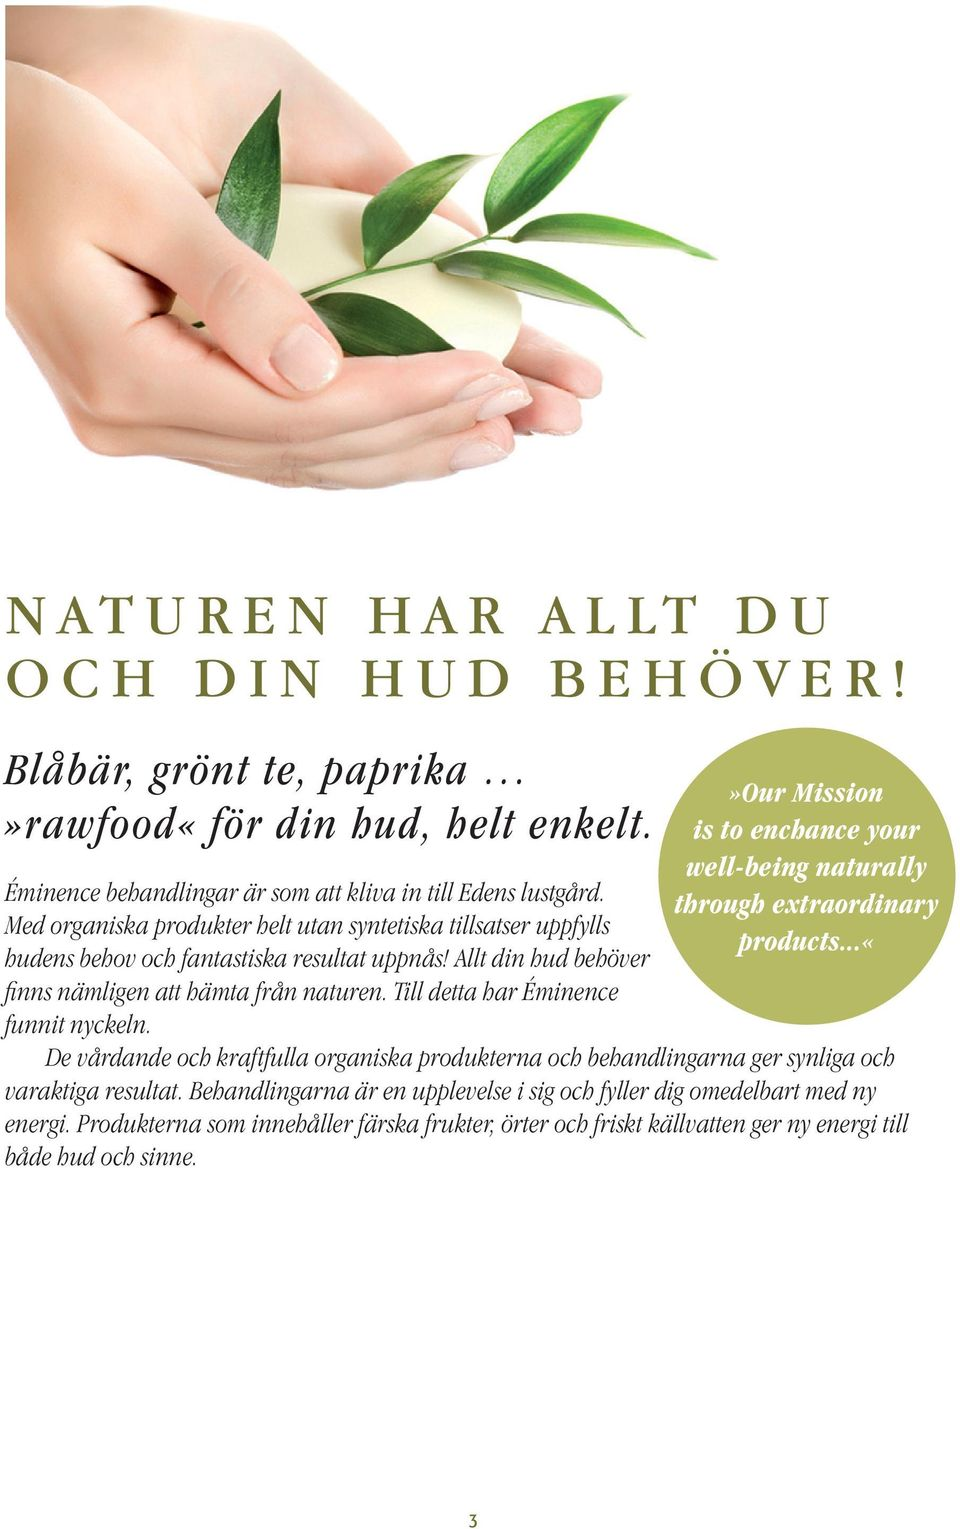 Till detta har Éminence funnit nyckeln.»our Mission is to enchance your well-being naturally through extraordinary products.